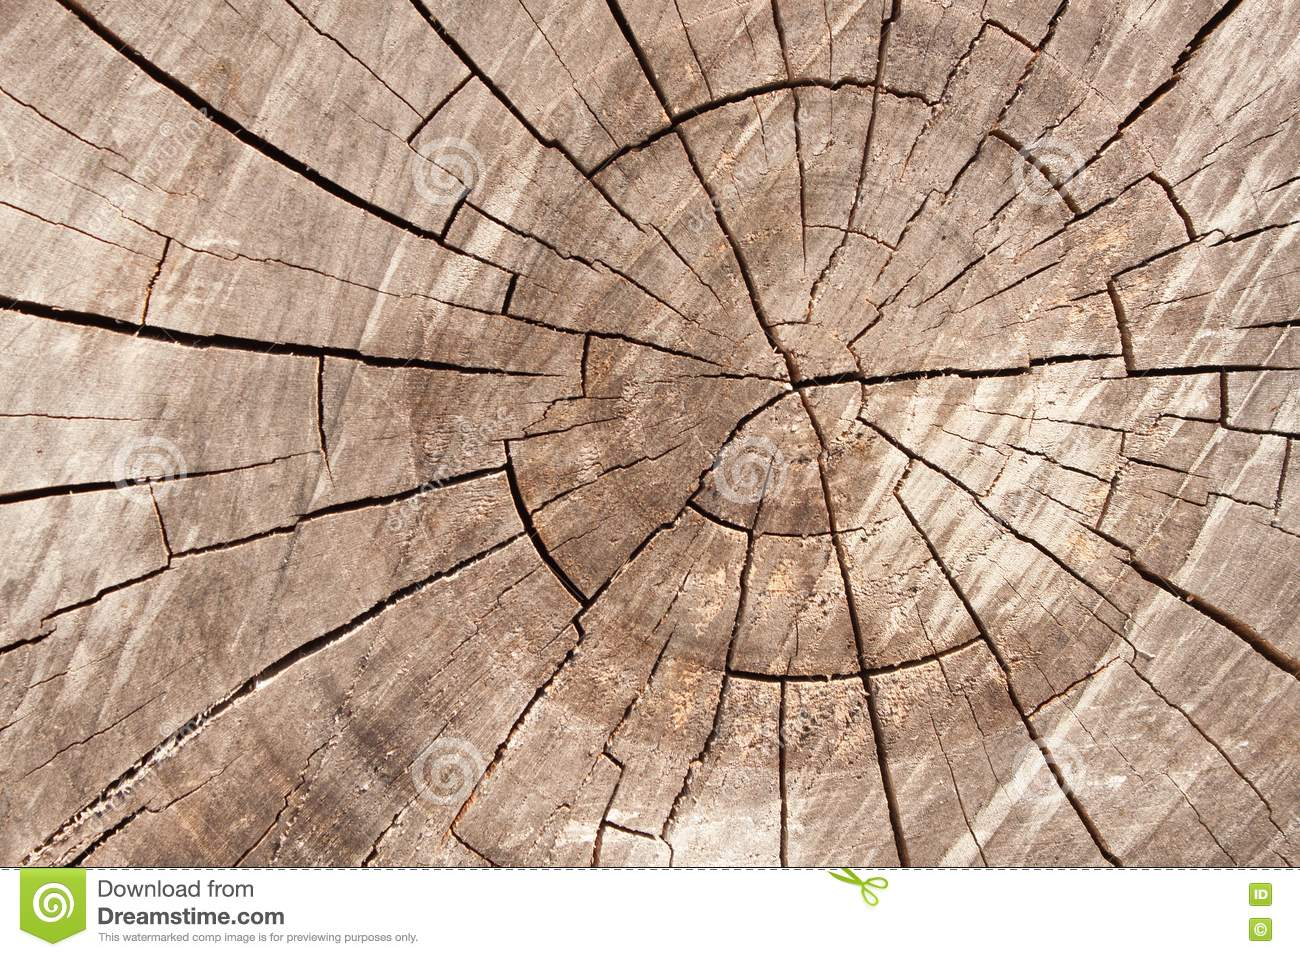 sideview background wooden wood tree cut texture log rings